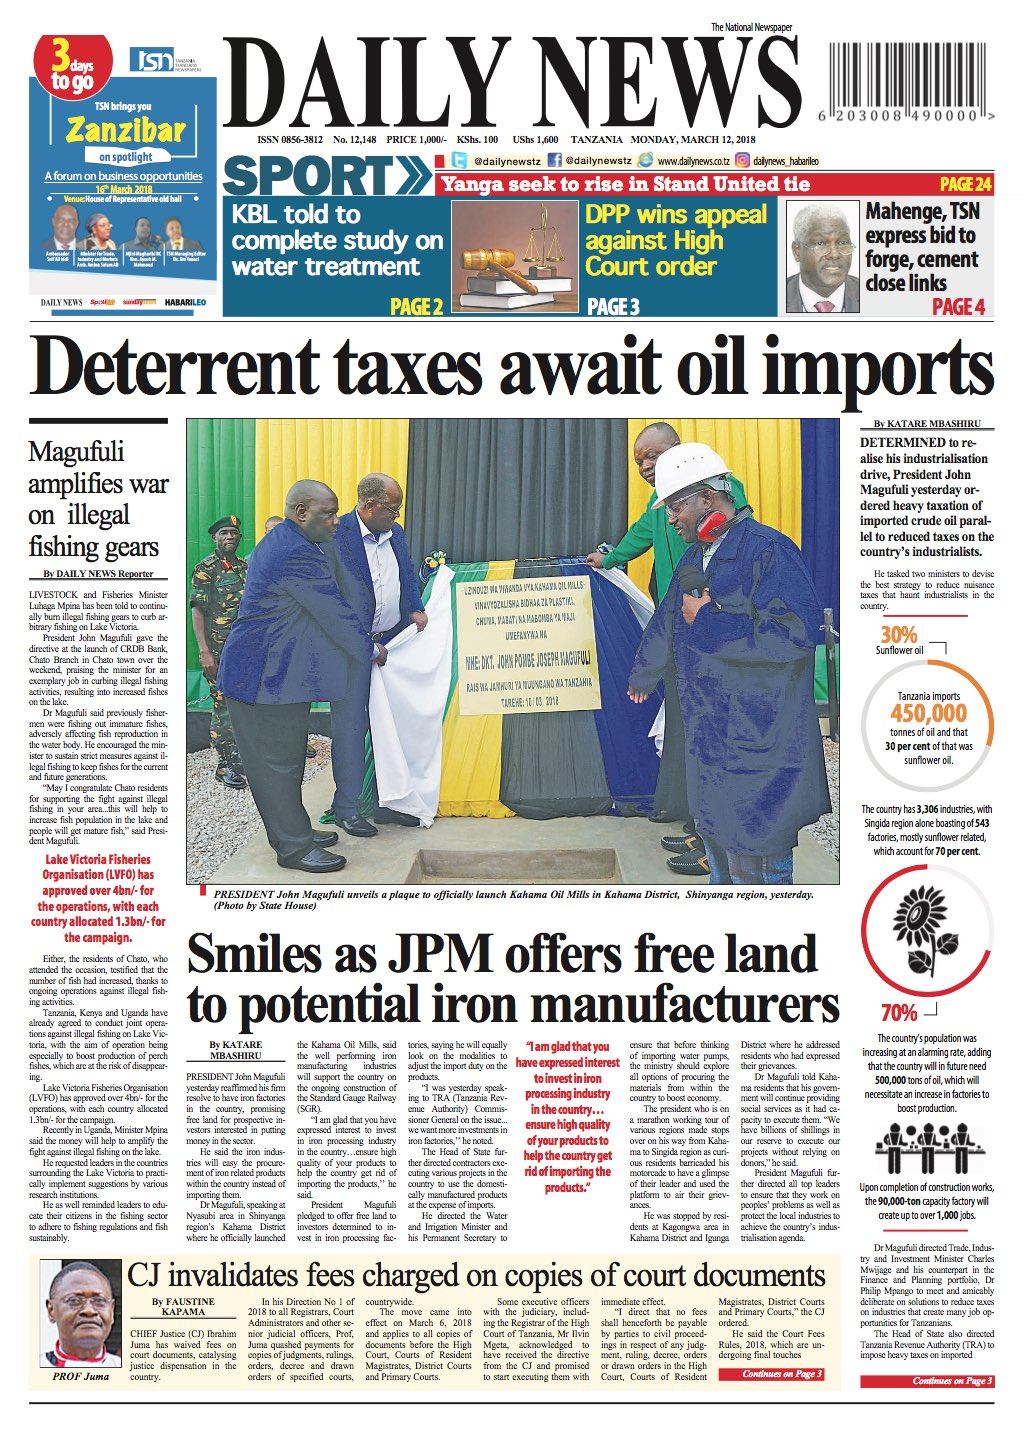 DETERRENT TAXES AWAIT OIL IMPORTS